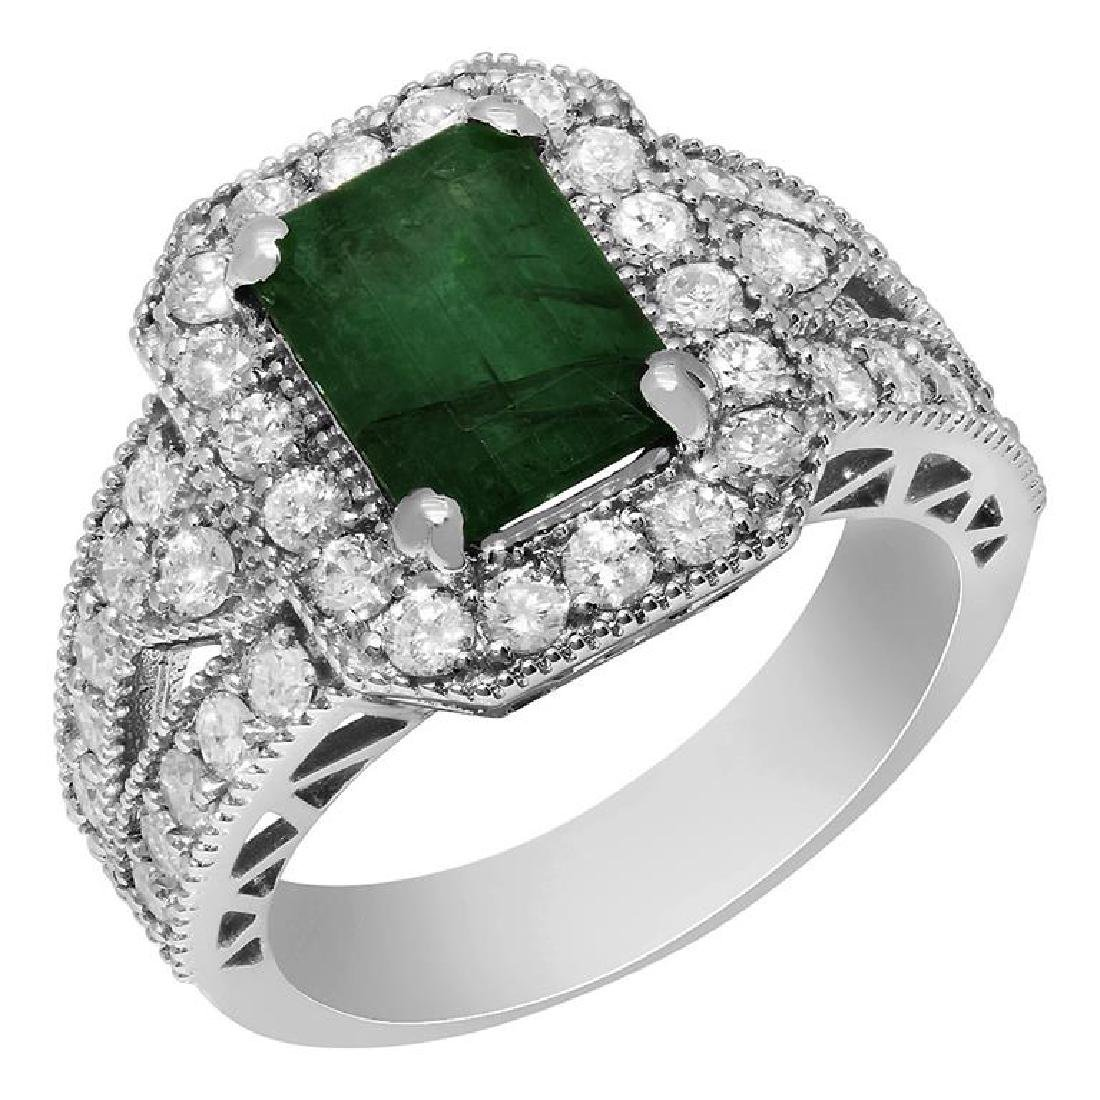 14k White Gold 2.10ct Emerald 1.19ct Diamond Ring